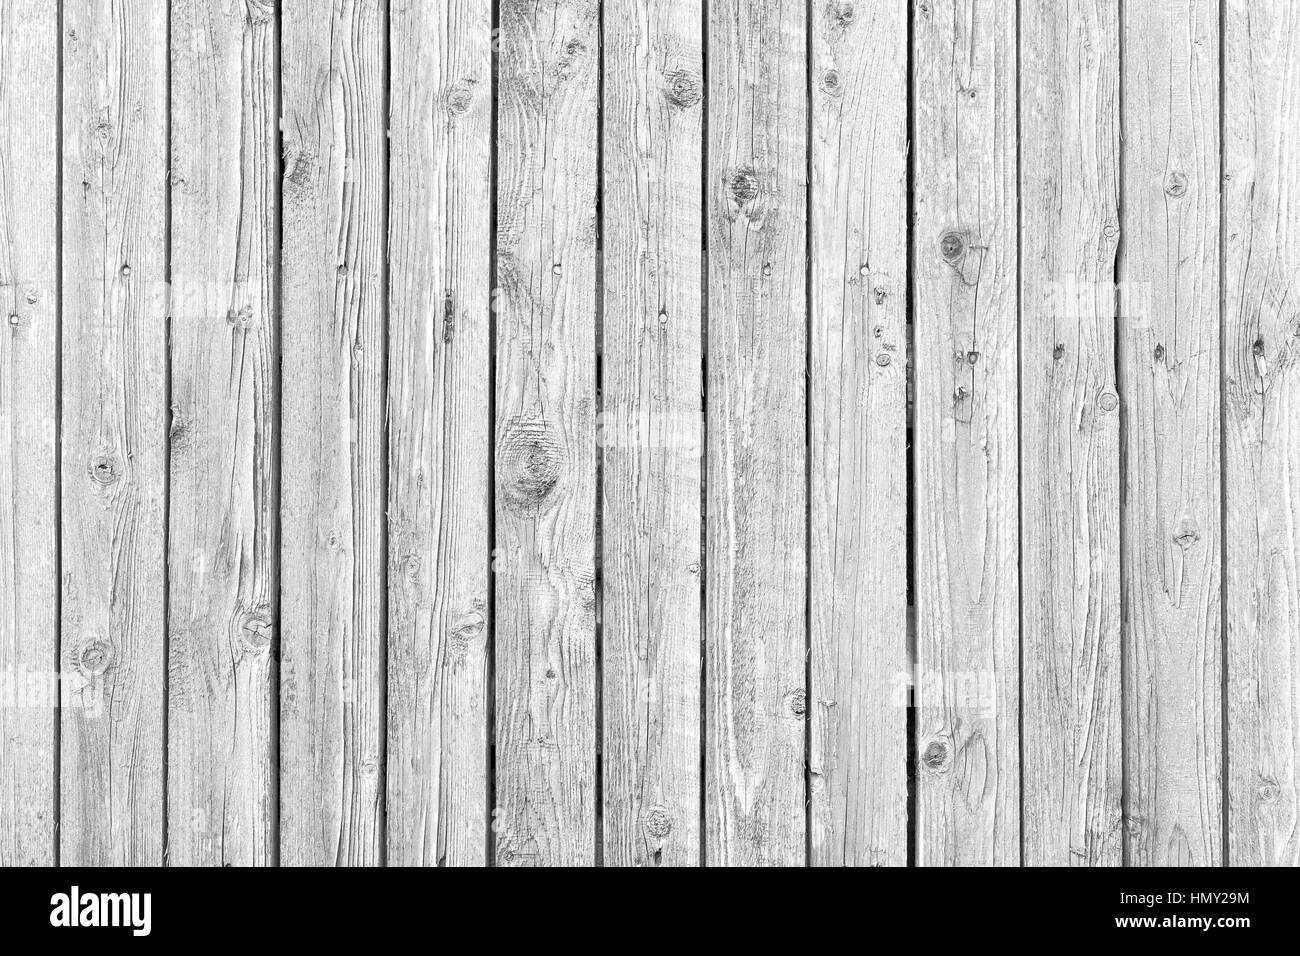 Old wood texture with weathered white paint - Stock Image